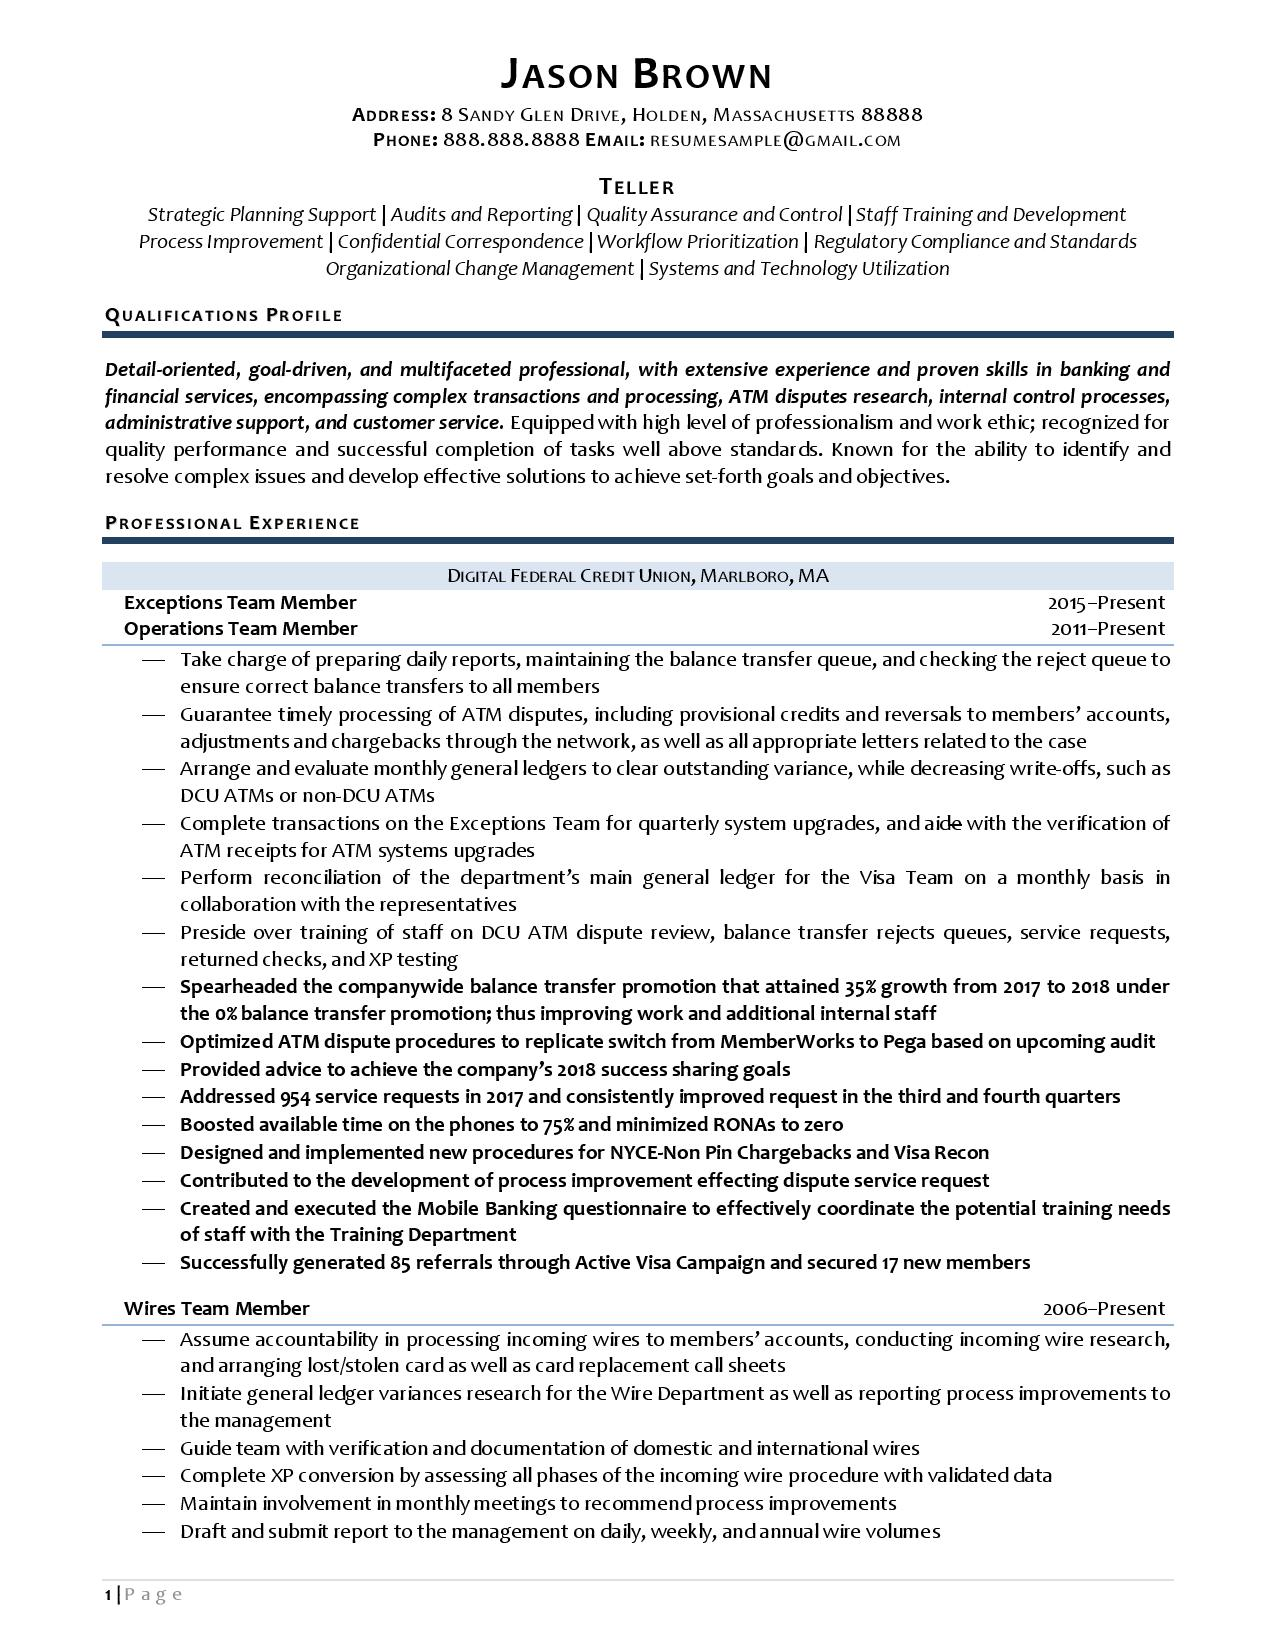 A teller resume sample with bank teller job description for resume page 1